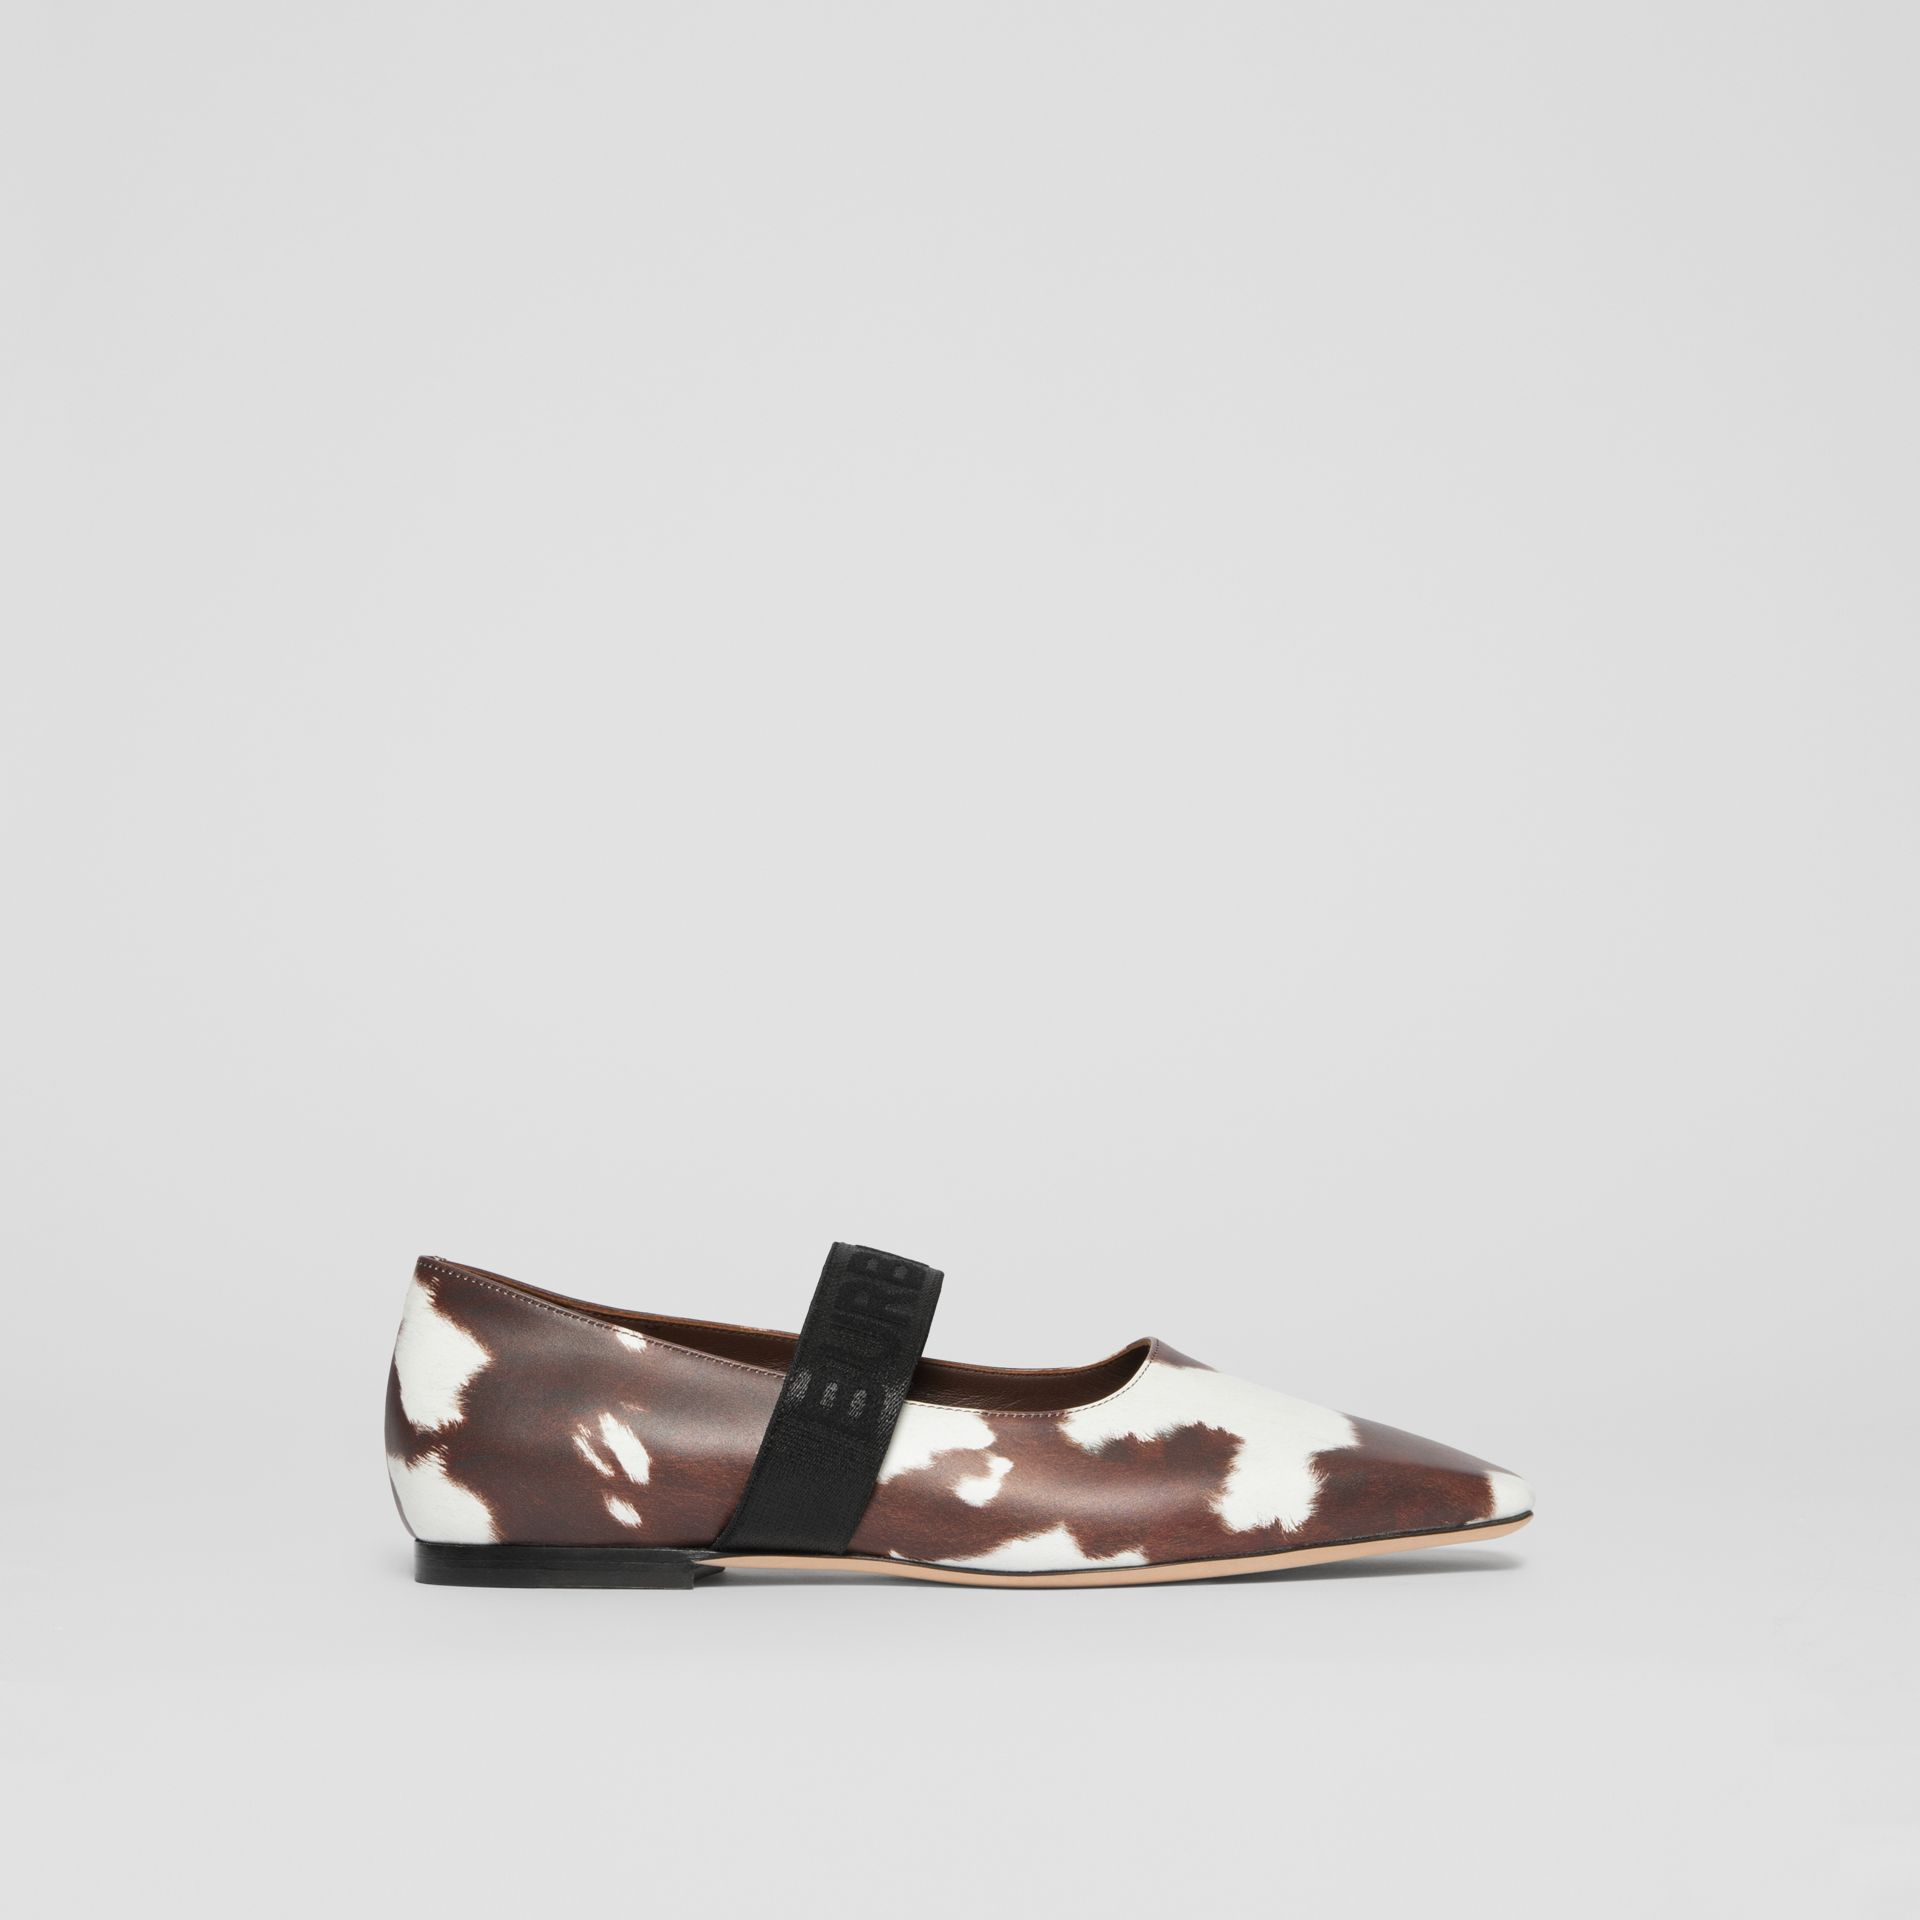 Logo Detail Cow Print Leather Flats - Women | Burberry - gallery image 5